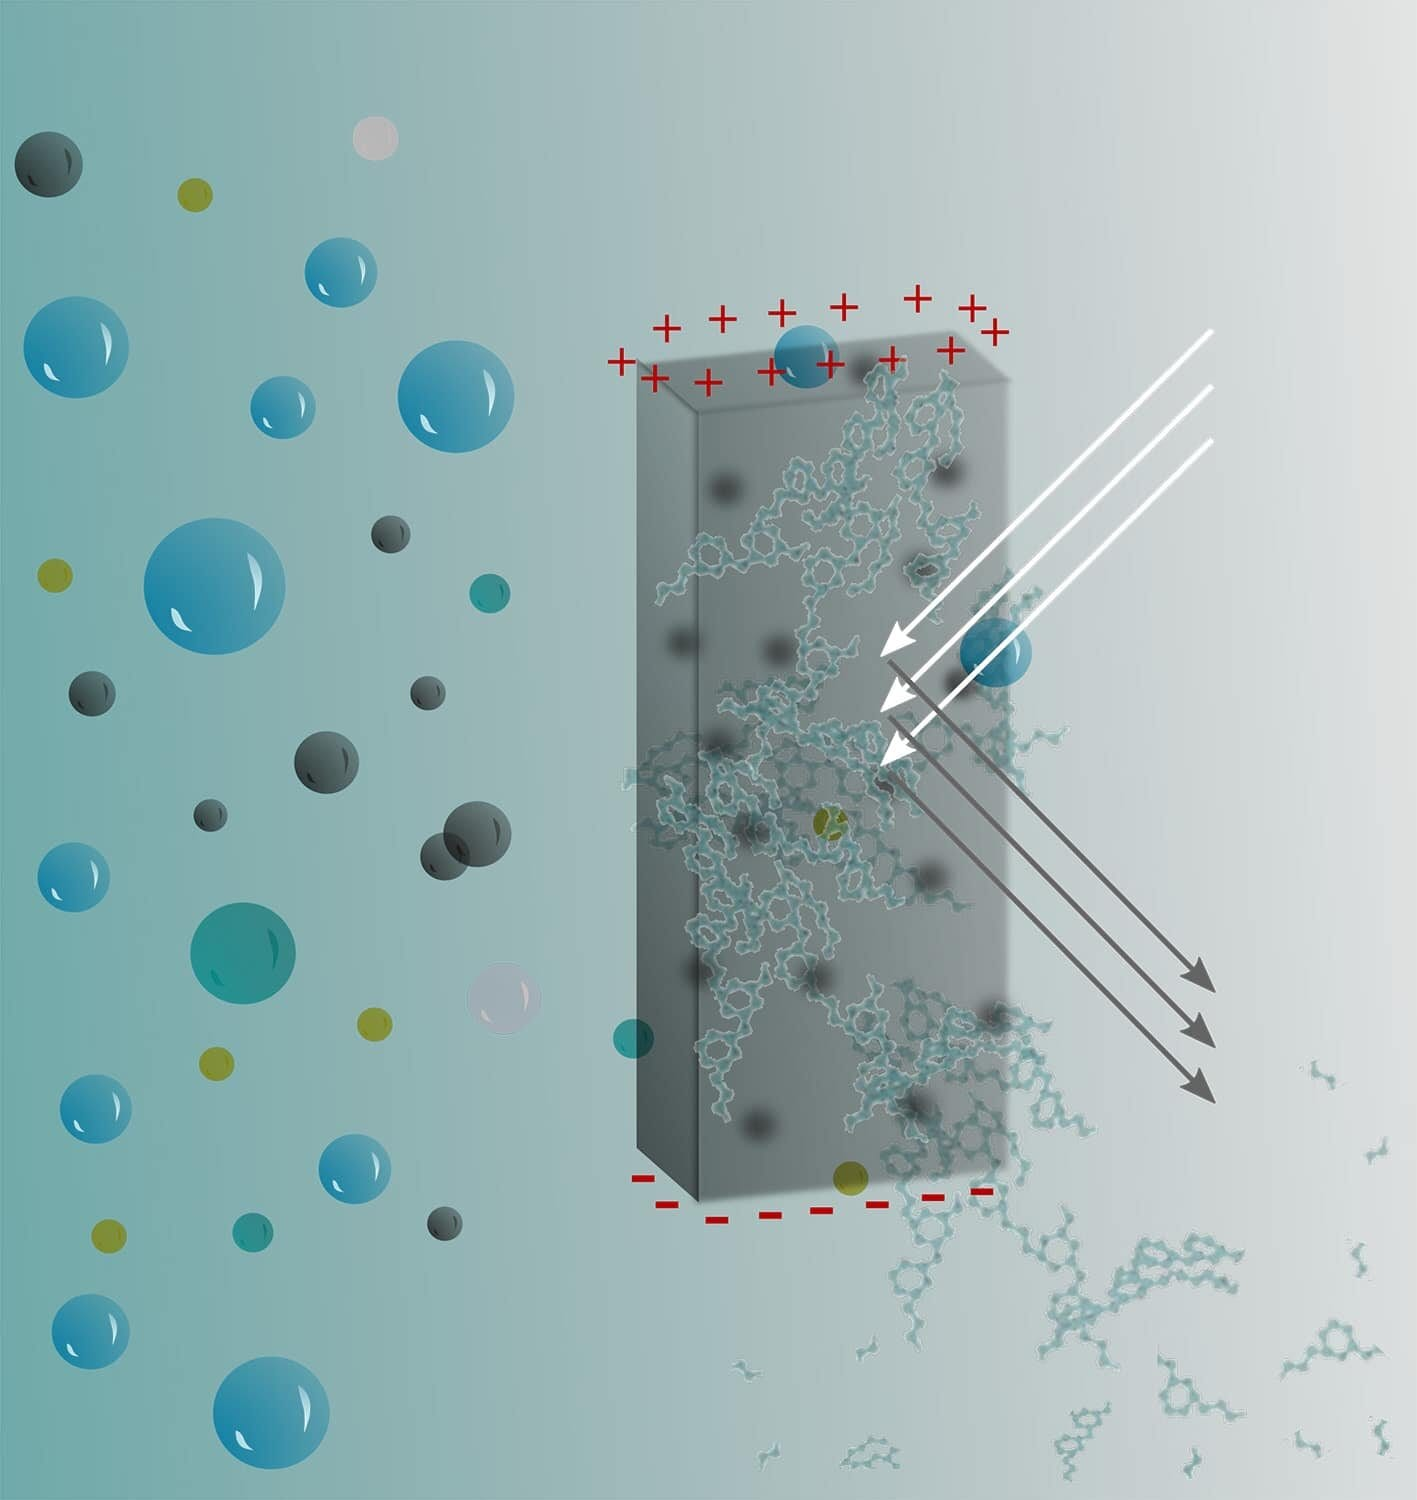 A graphic illustrates how bio-hydrogels respond to external stimuli and eventually can biodegrade in the environment.